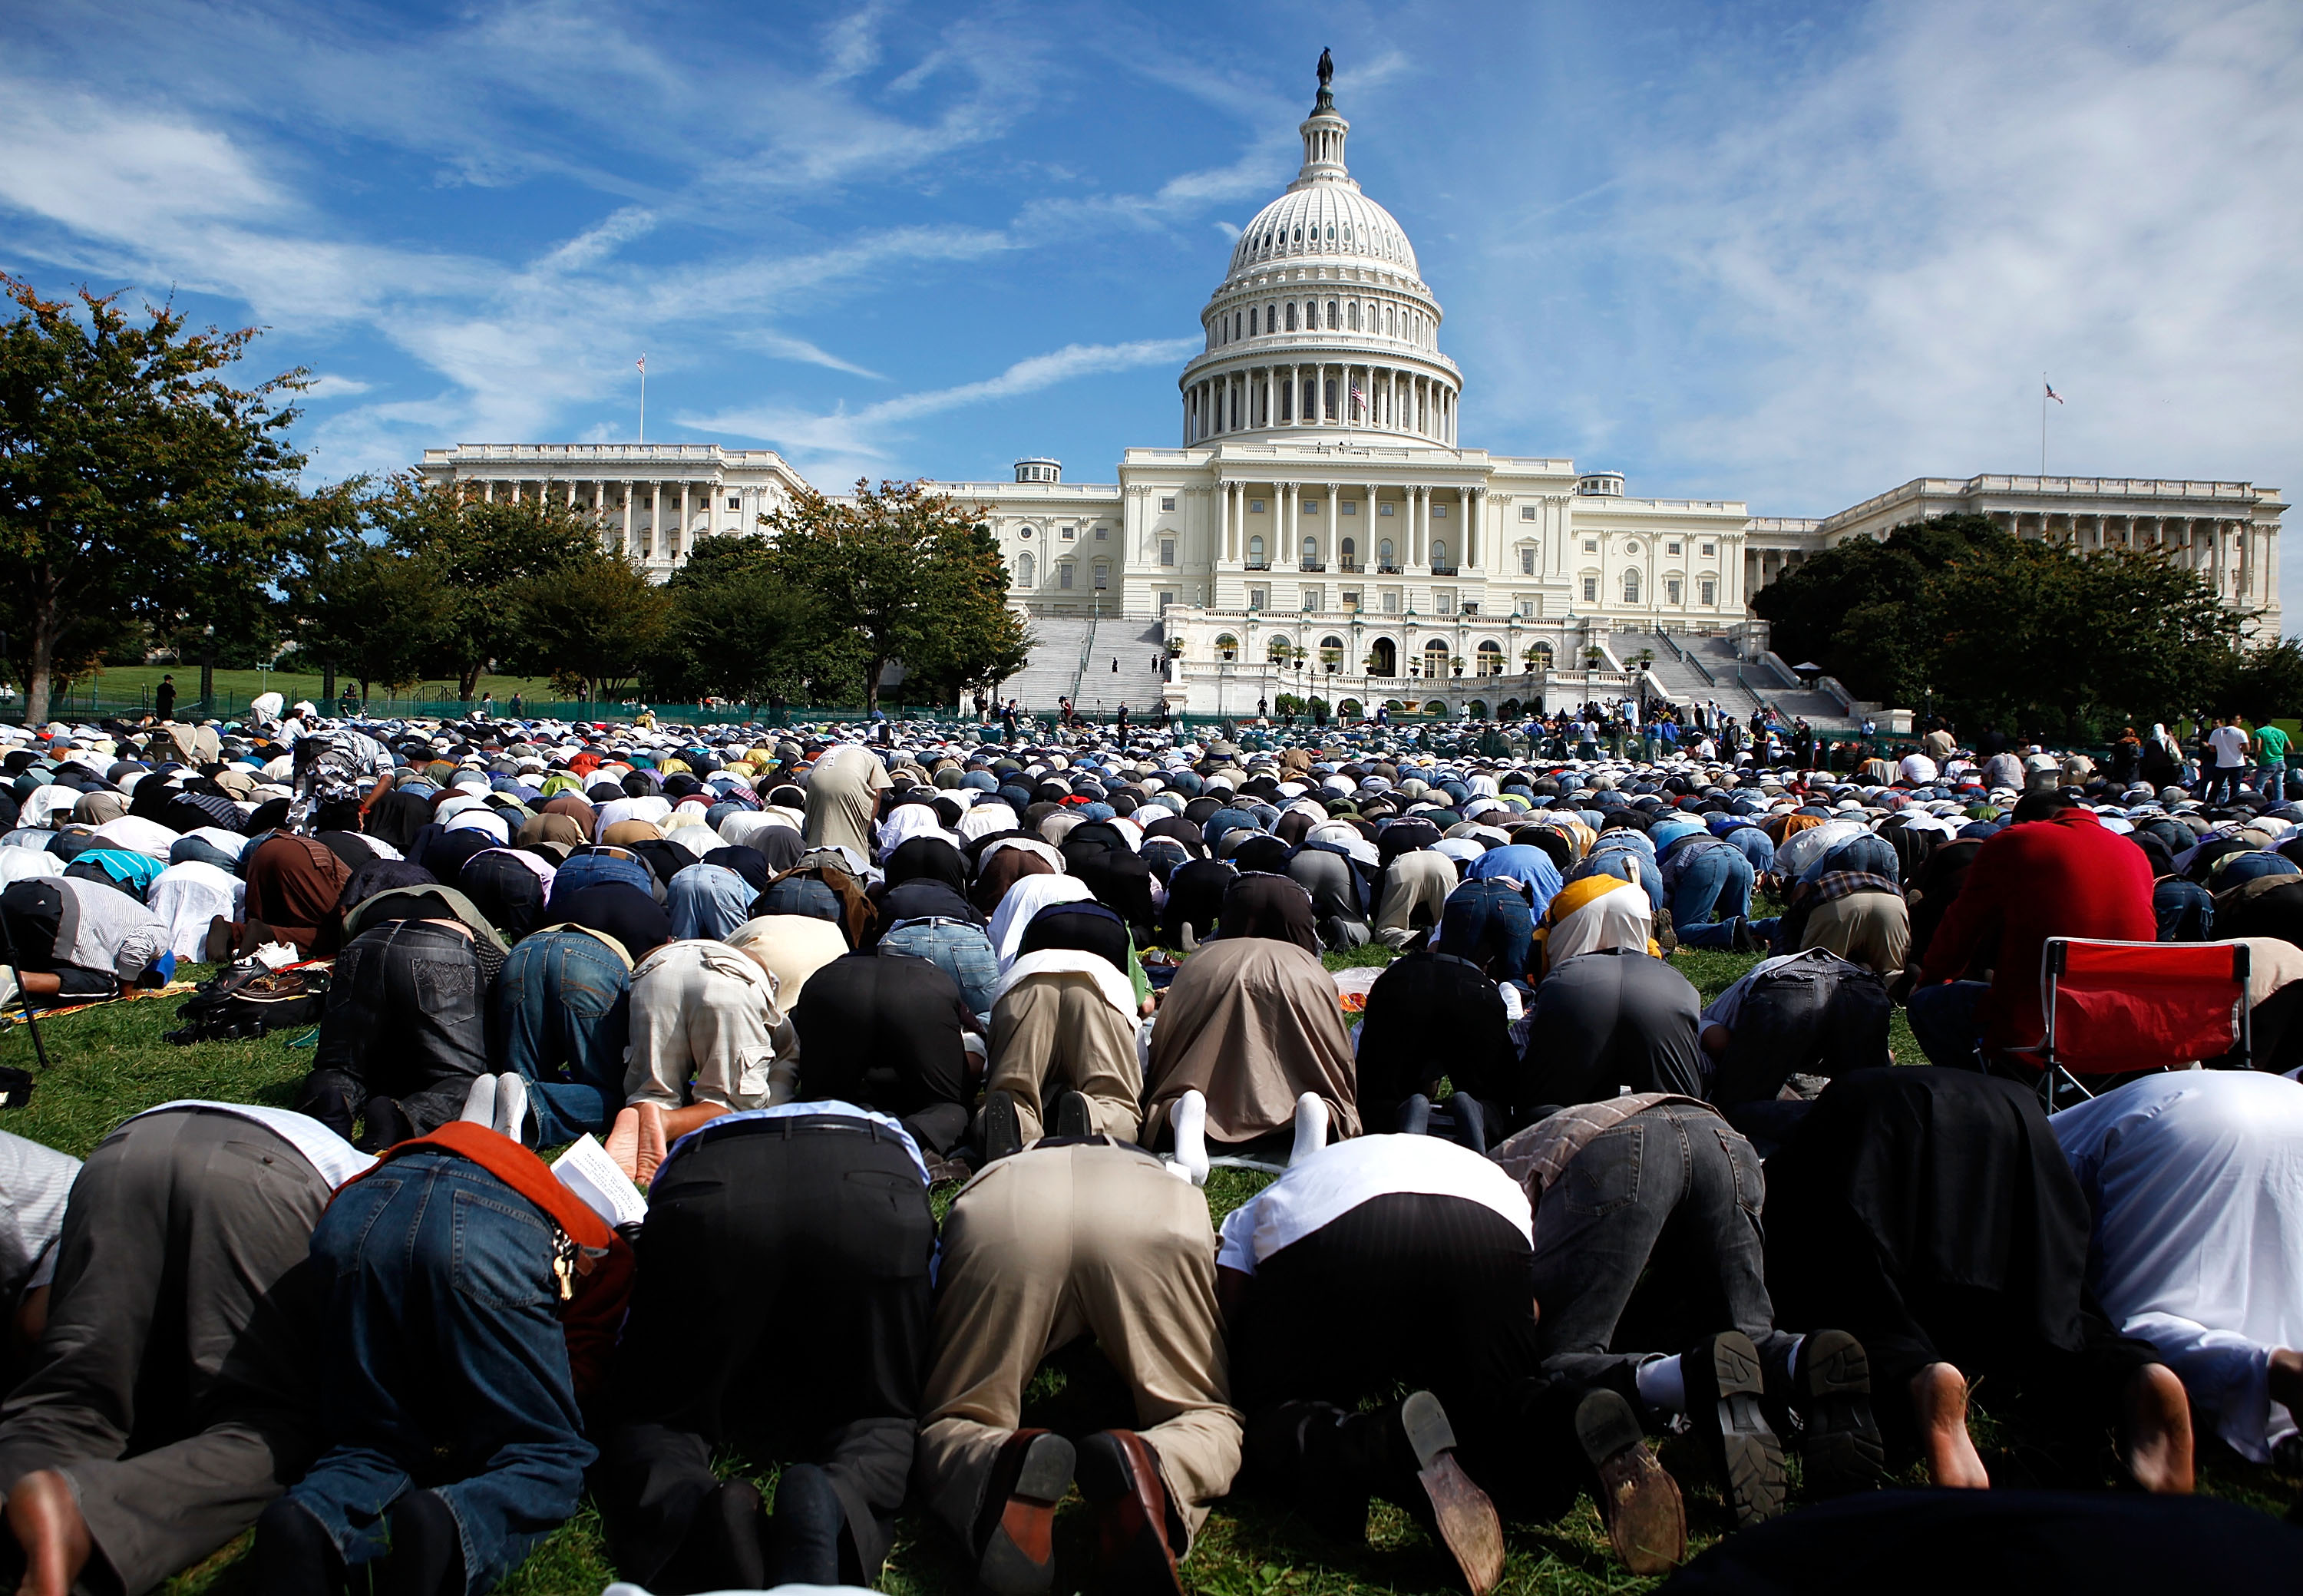 Shia Islam In The Americas: Muslims Want To Influence US Elections, But Without Big